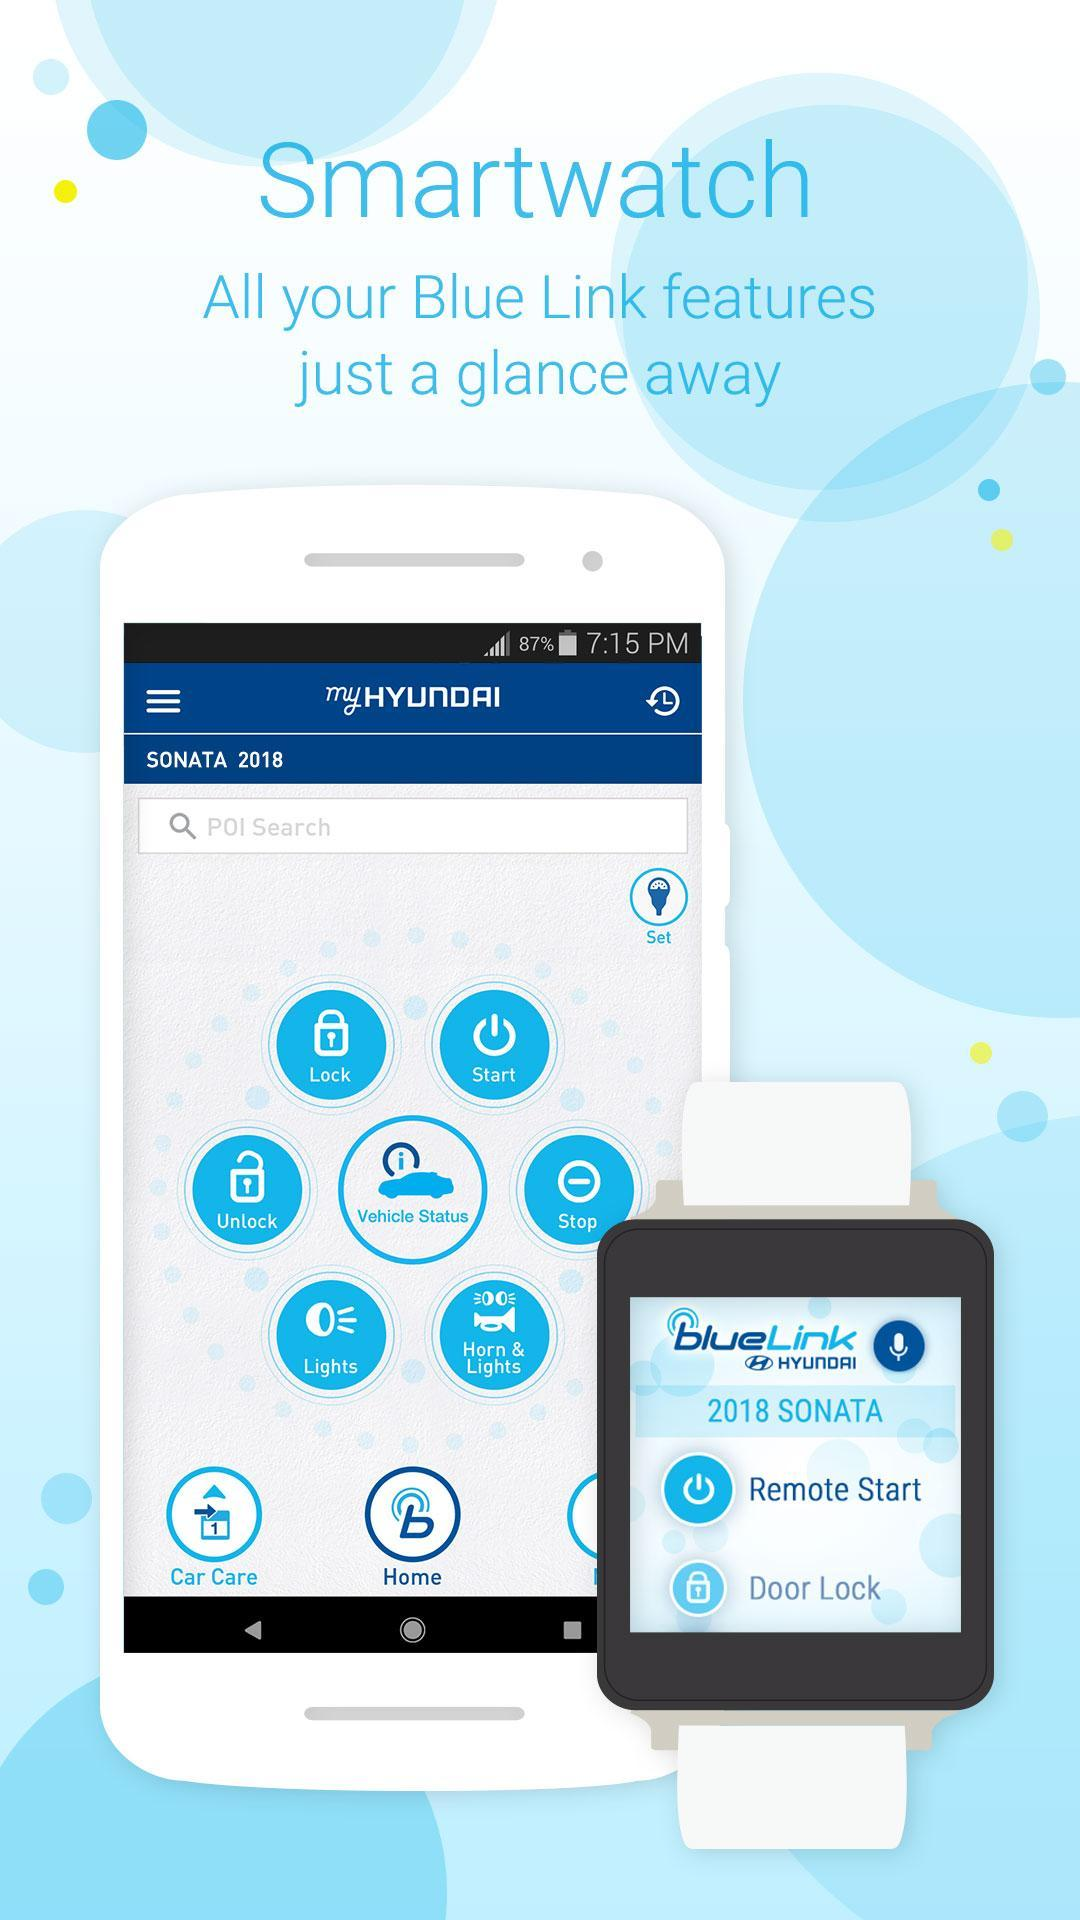 Blue Link Phone Number >> Myhyundai For Android Apk Download